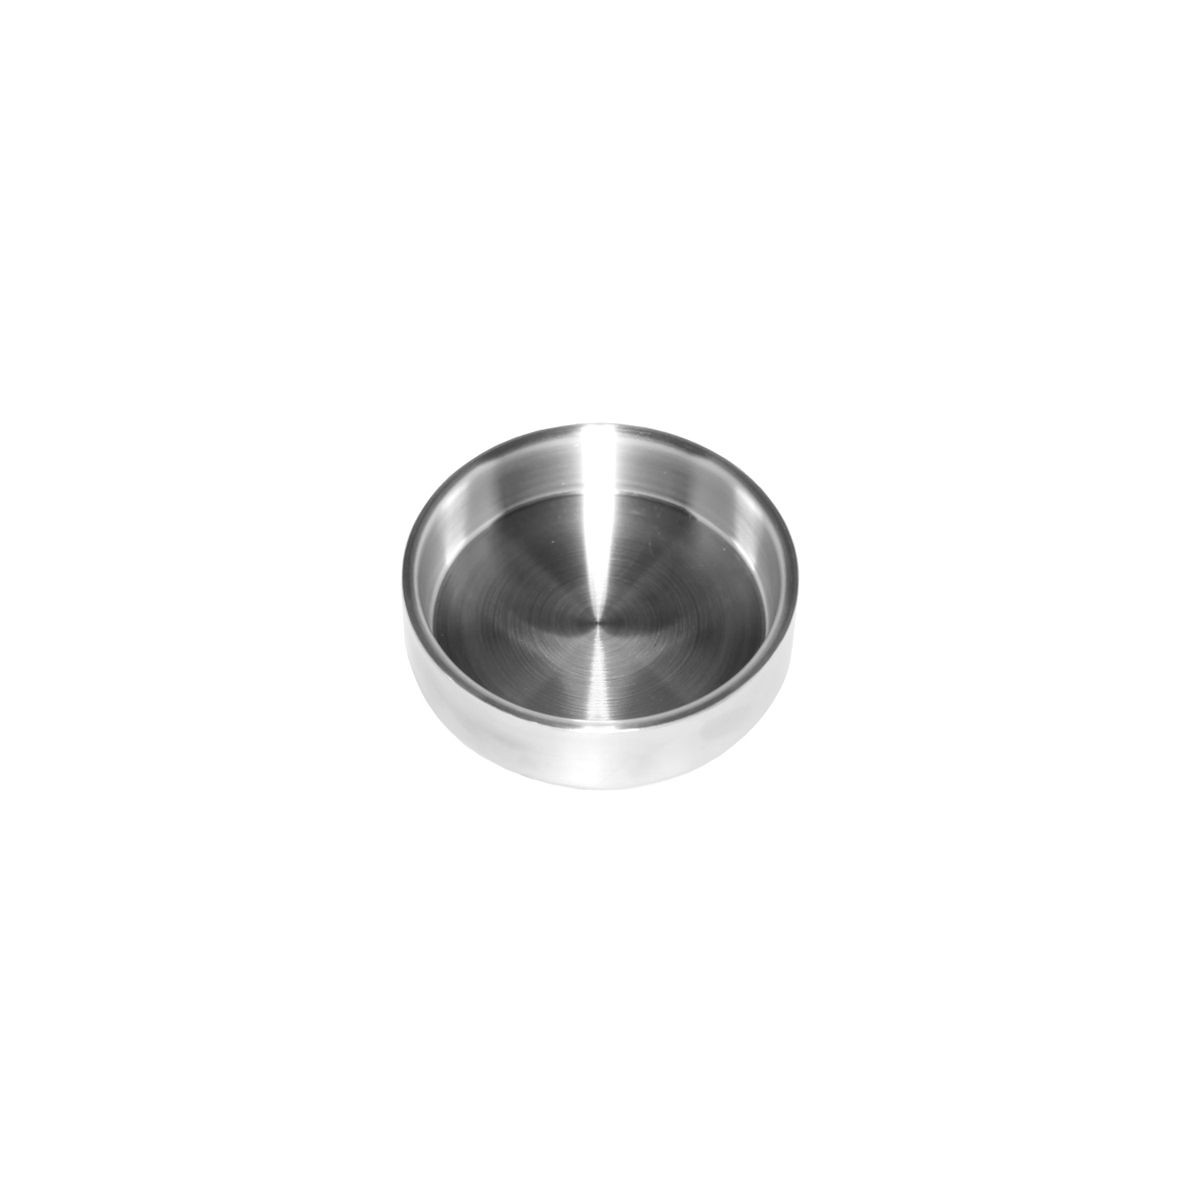 Service Ideas SB-44 SteelForme Double Wall Serving Bowl 12 oz.